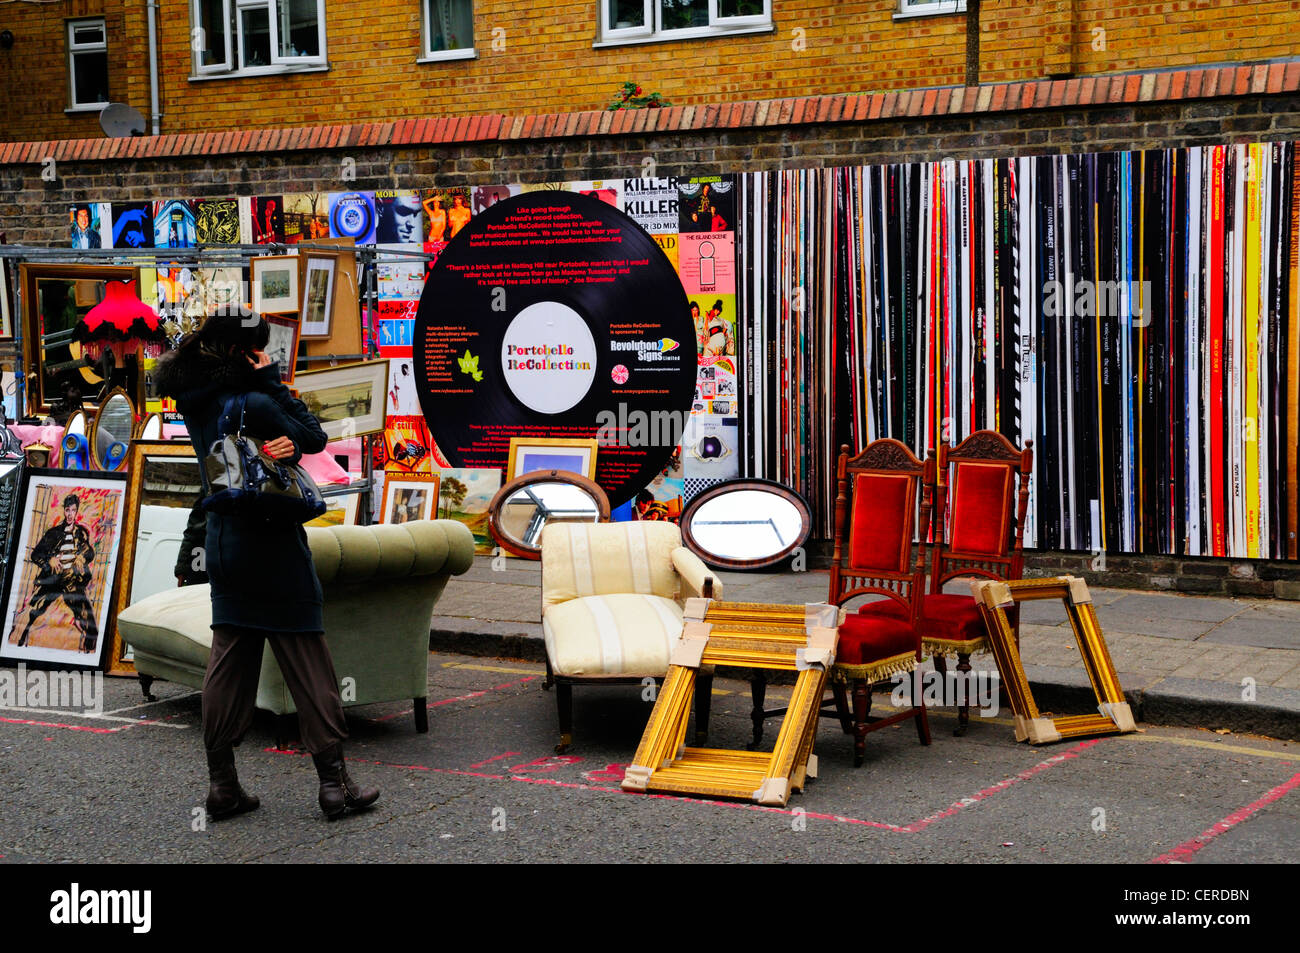 Furniture and picture frames for sale in the street in front of Portobello ReCollection, a wall decorated as classic - Stock Image